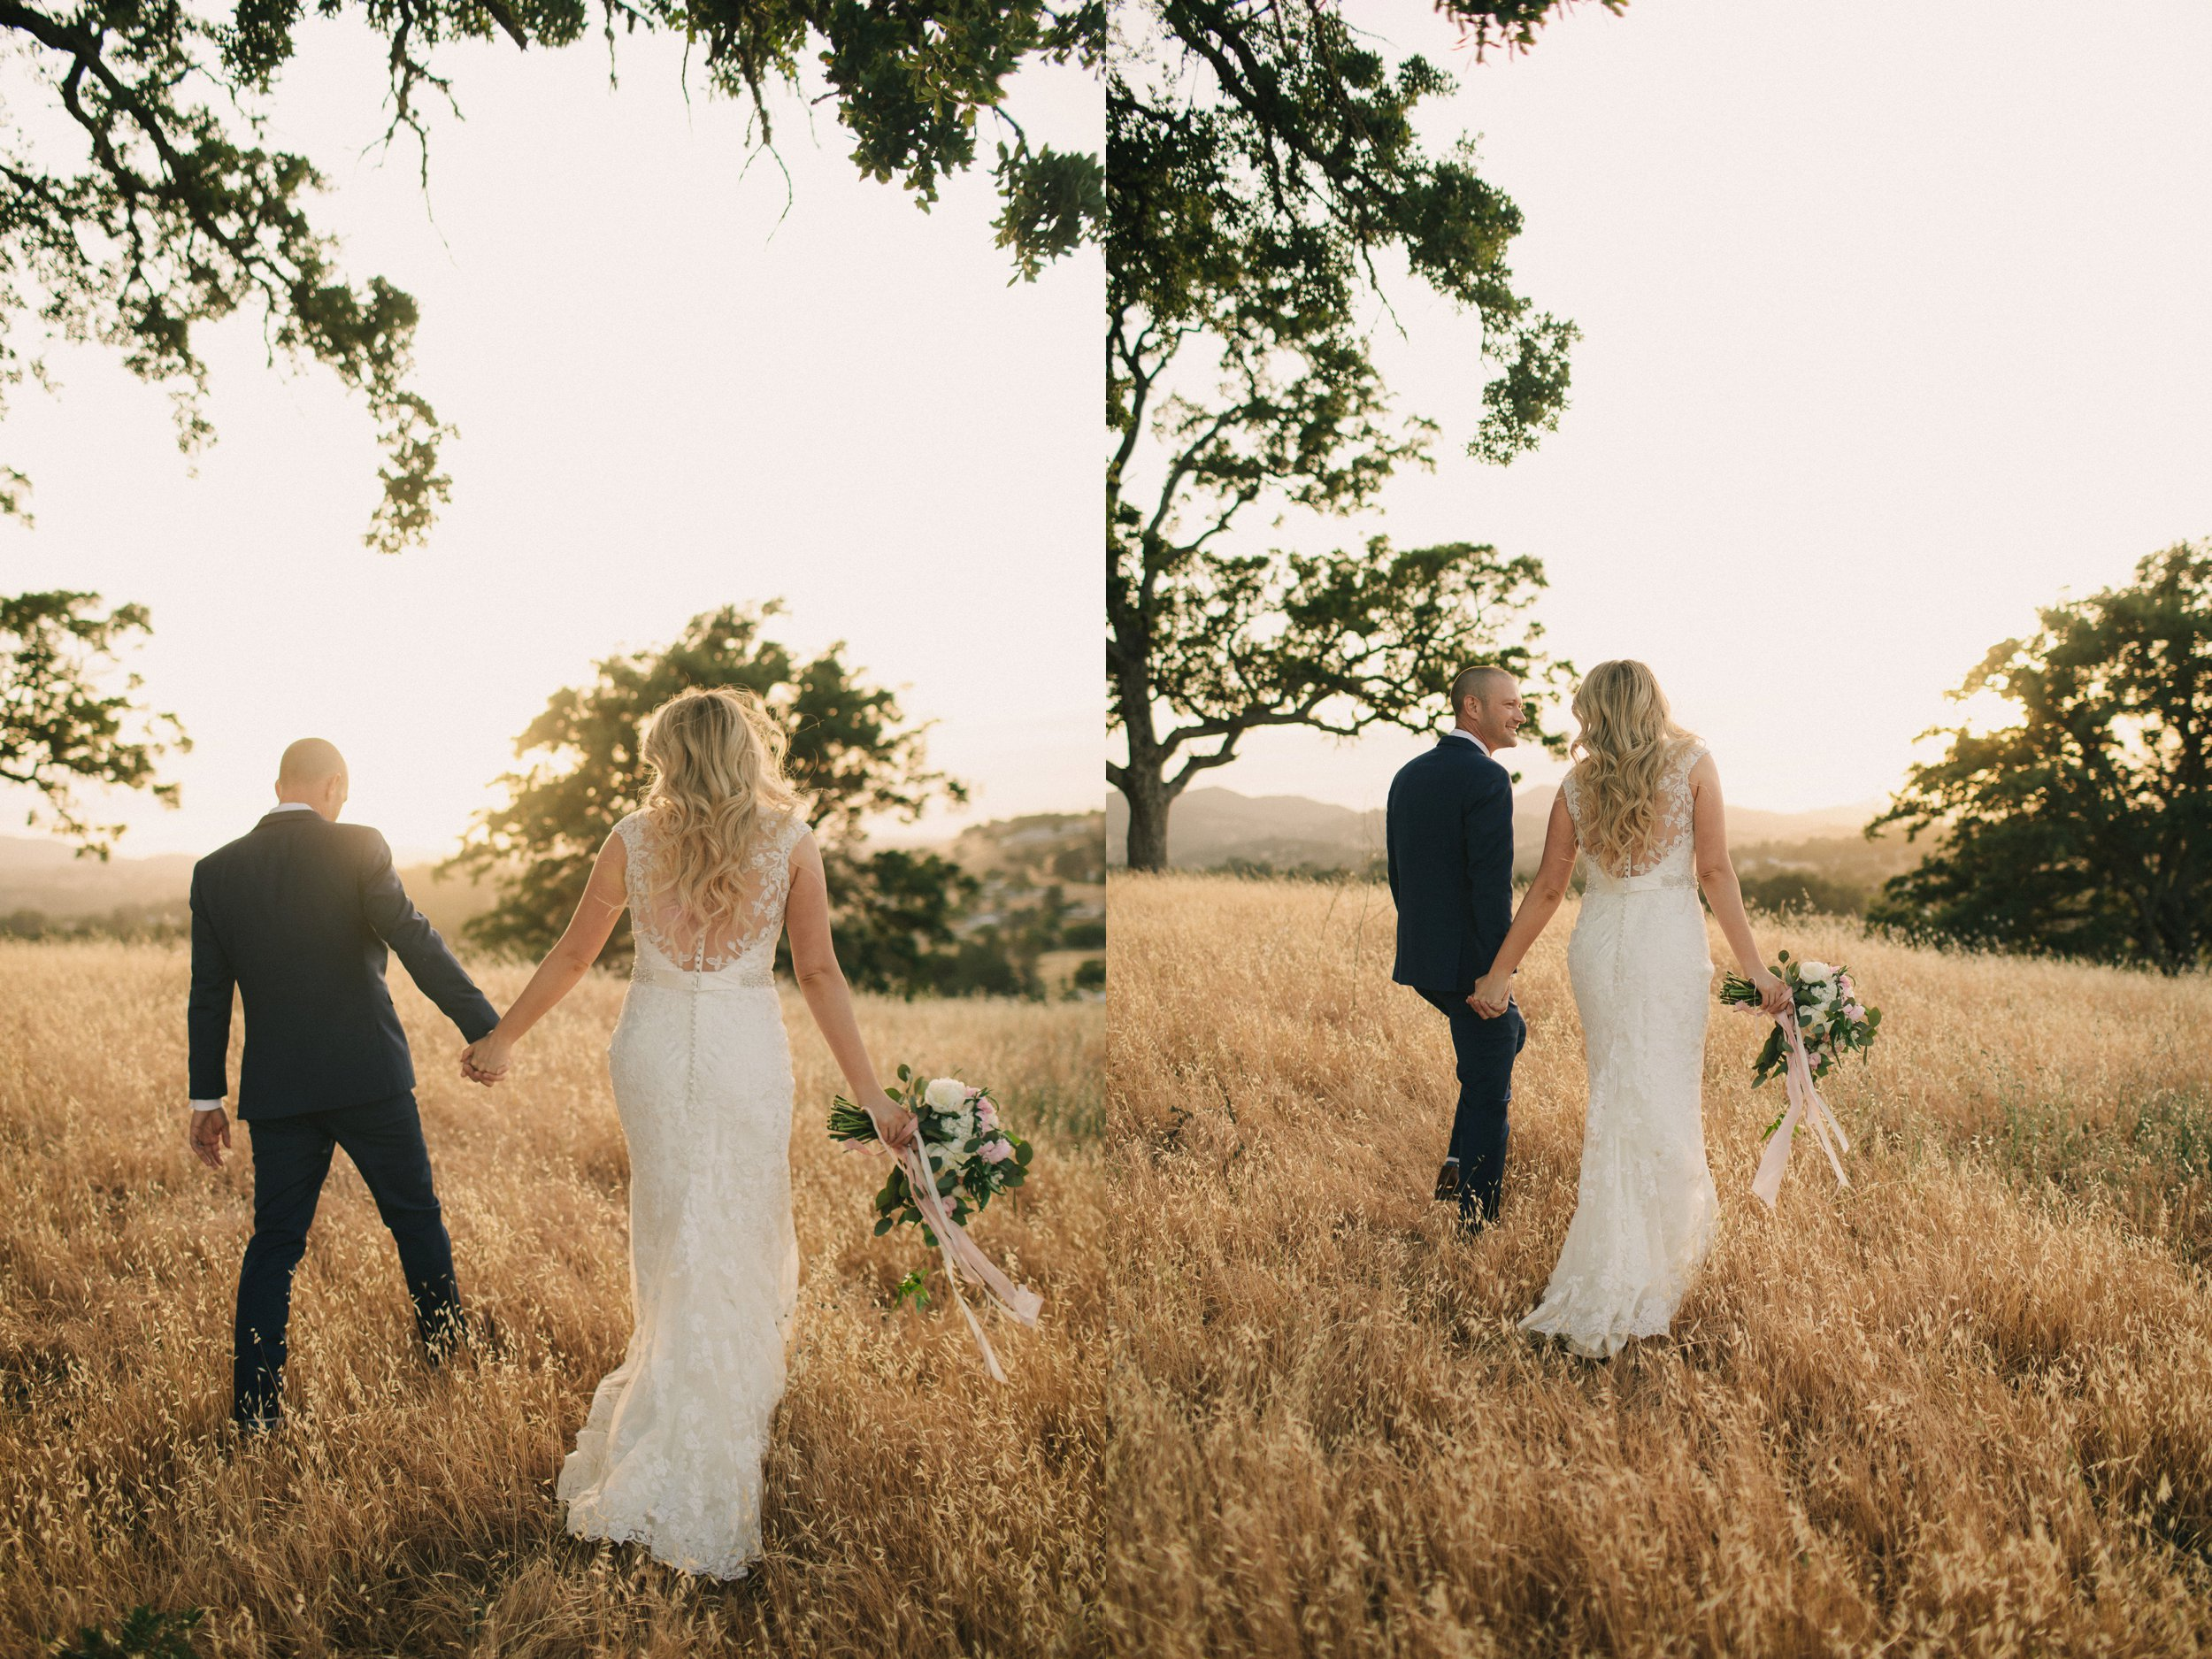 CaliforniaWedding|LindenCloverPhotography_0093.jpg